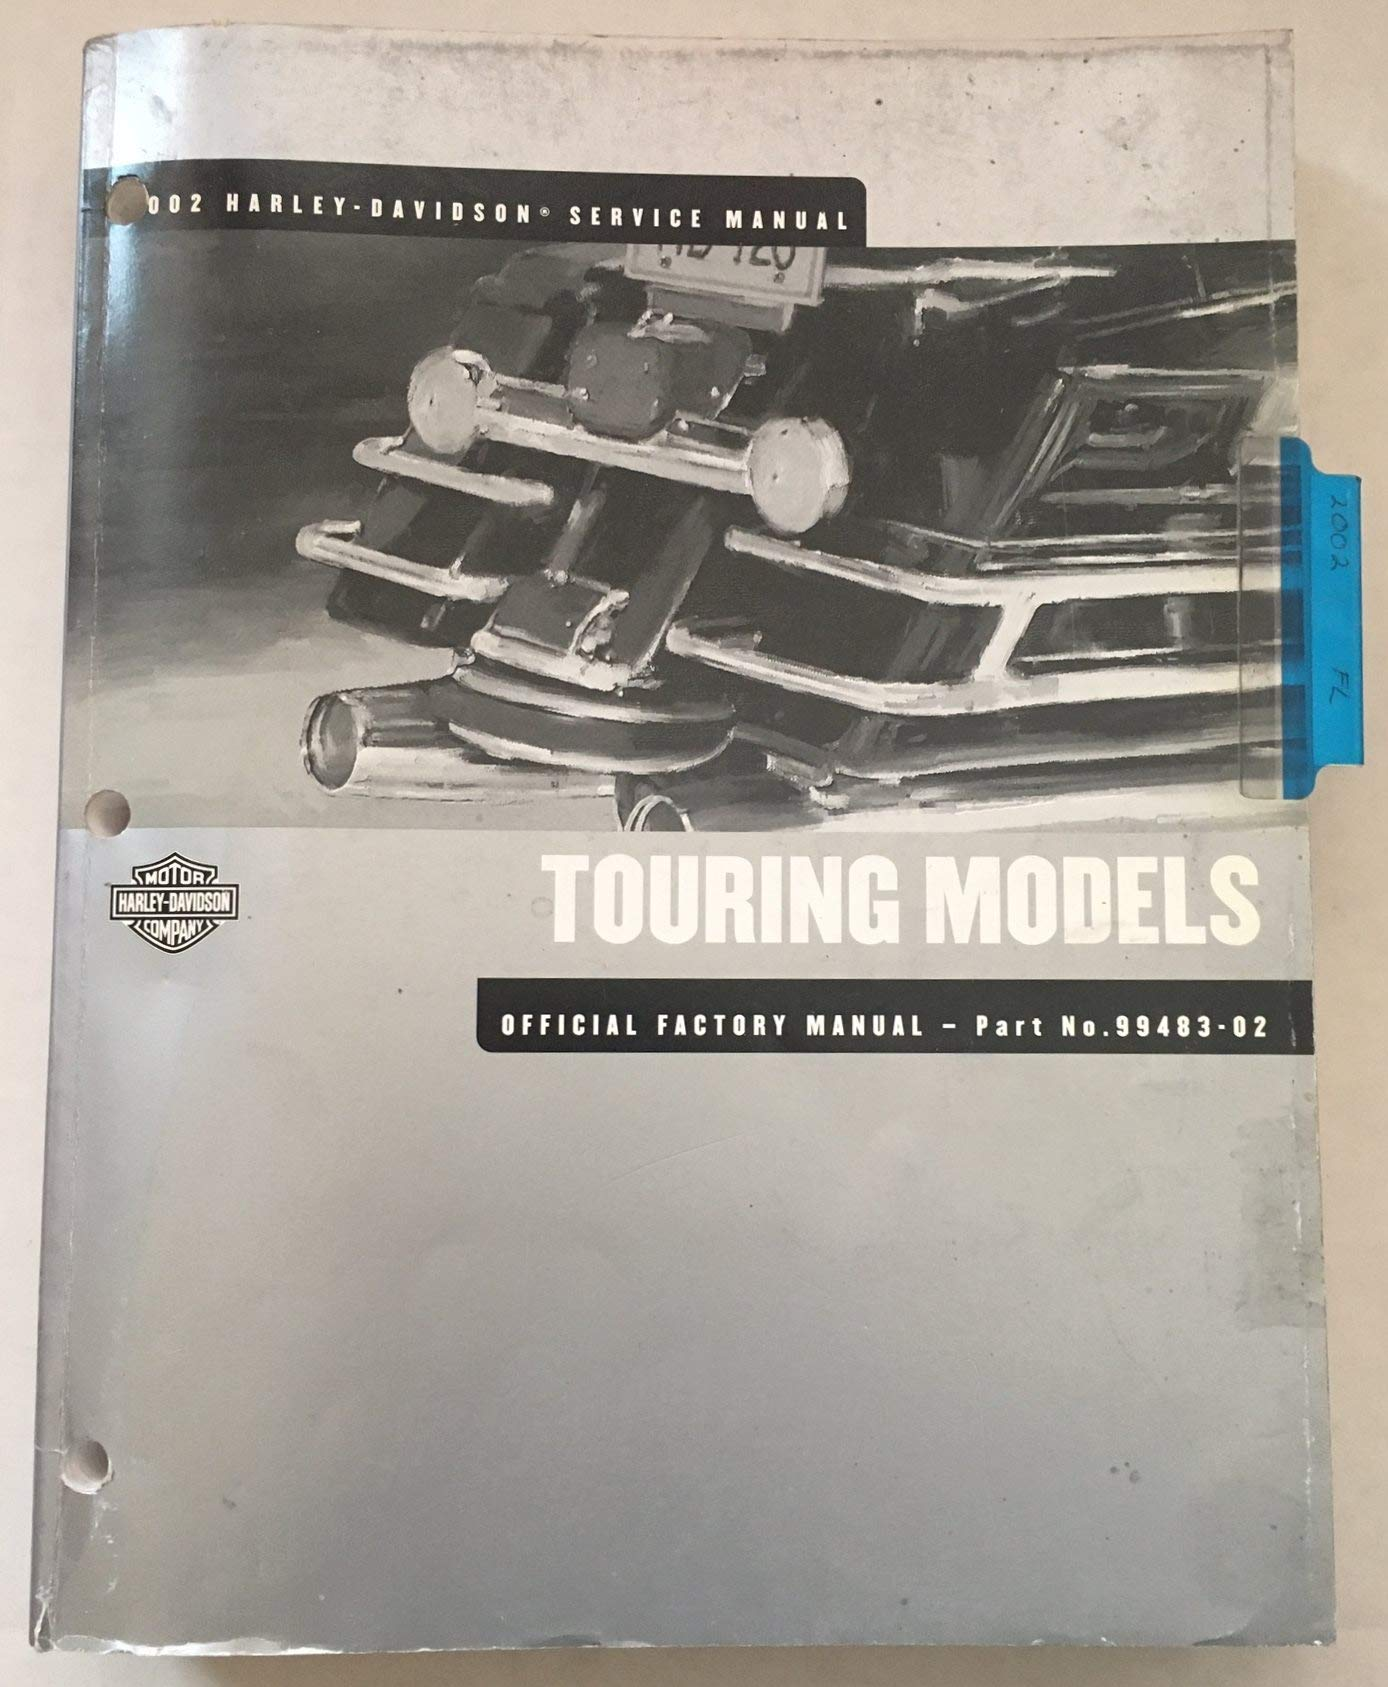 2002 Harley Davidson Service Manual Touring Models Official Factory Manual Part No 99483 02 2002 Touring 1450cc 5 Speed Models Harley Davidson Motor Company Amazon Com Books